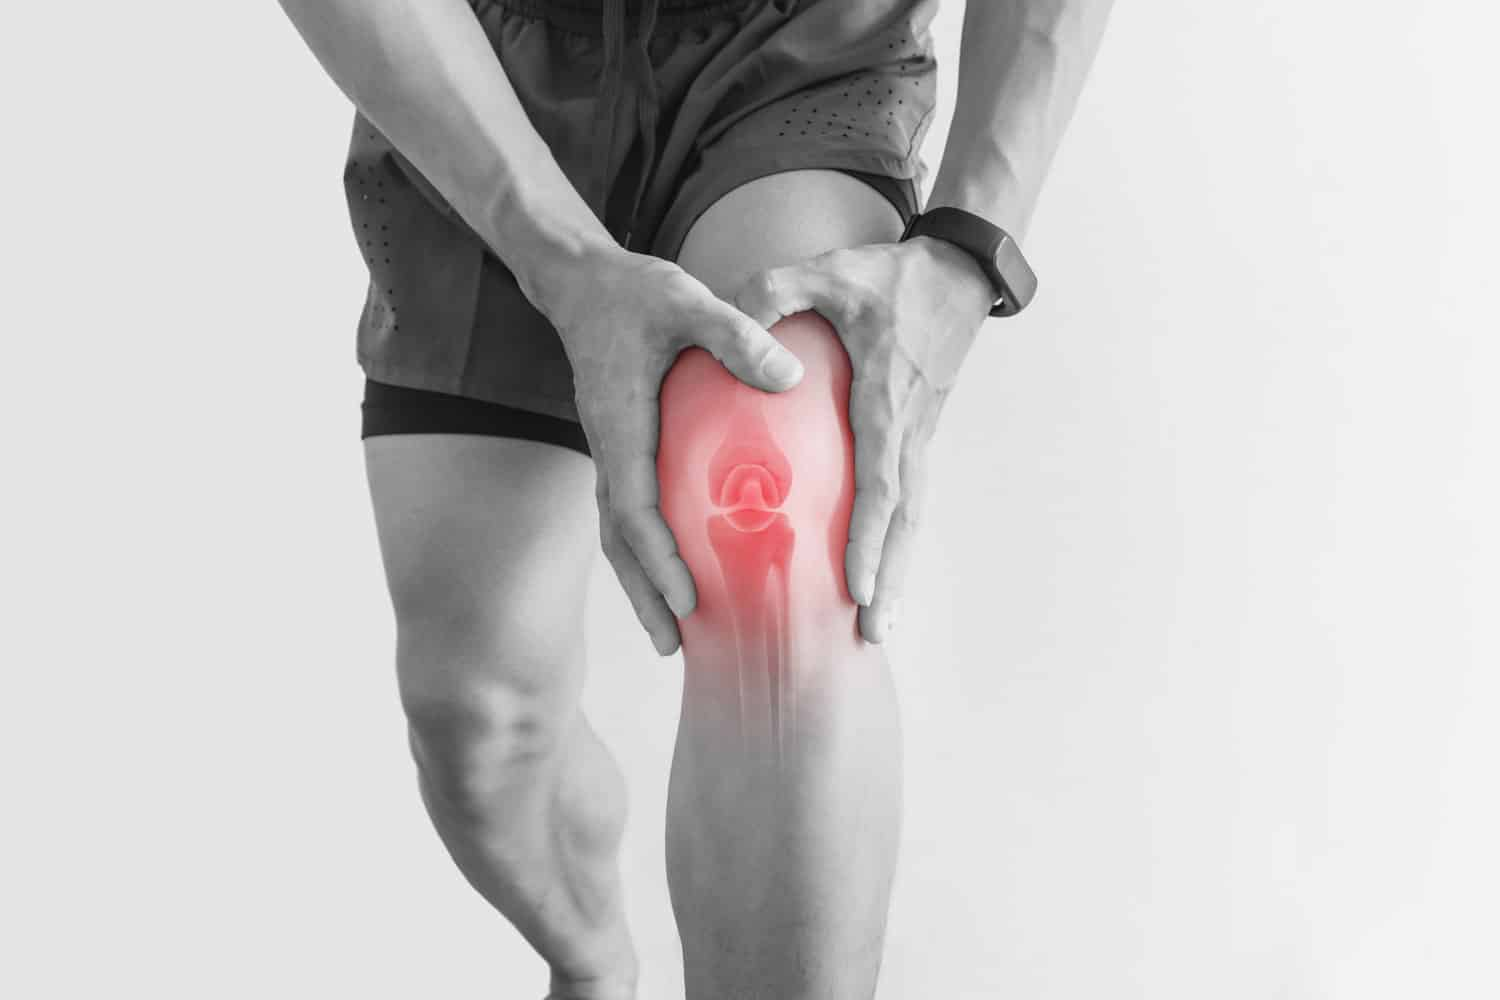 An informative photo of where joint pain starts